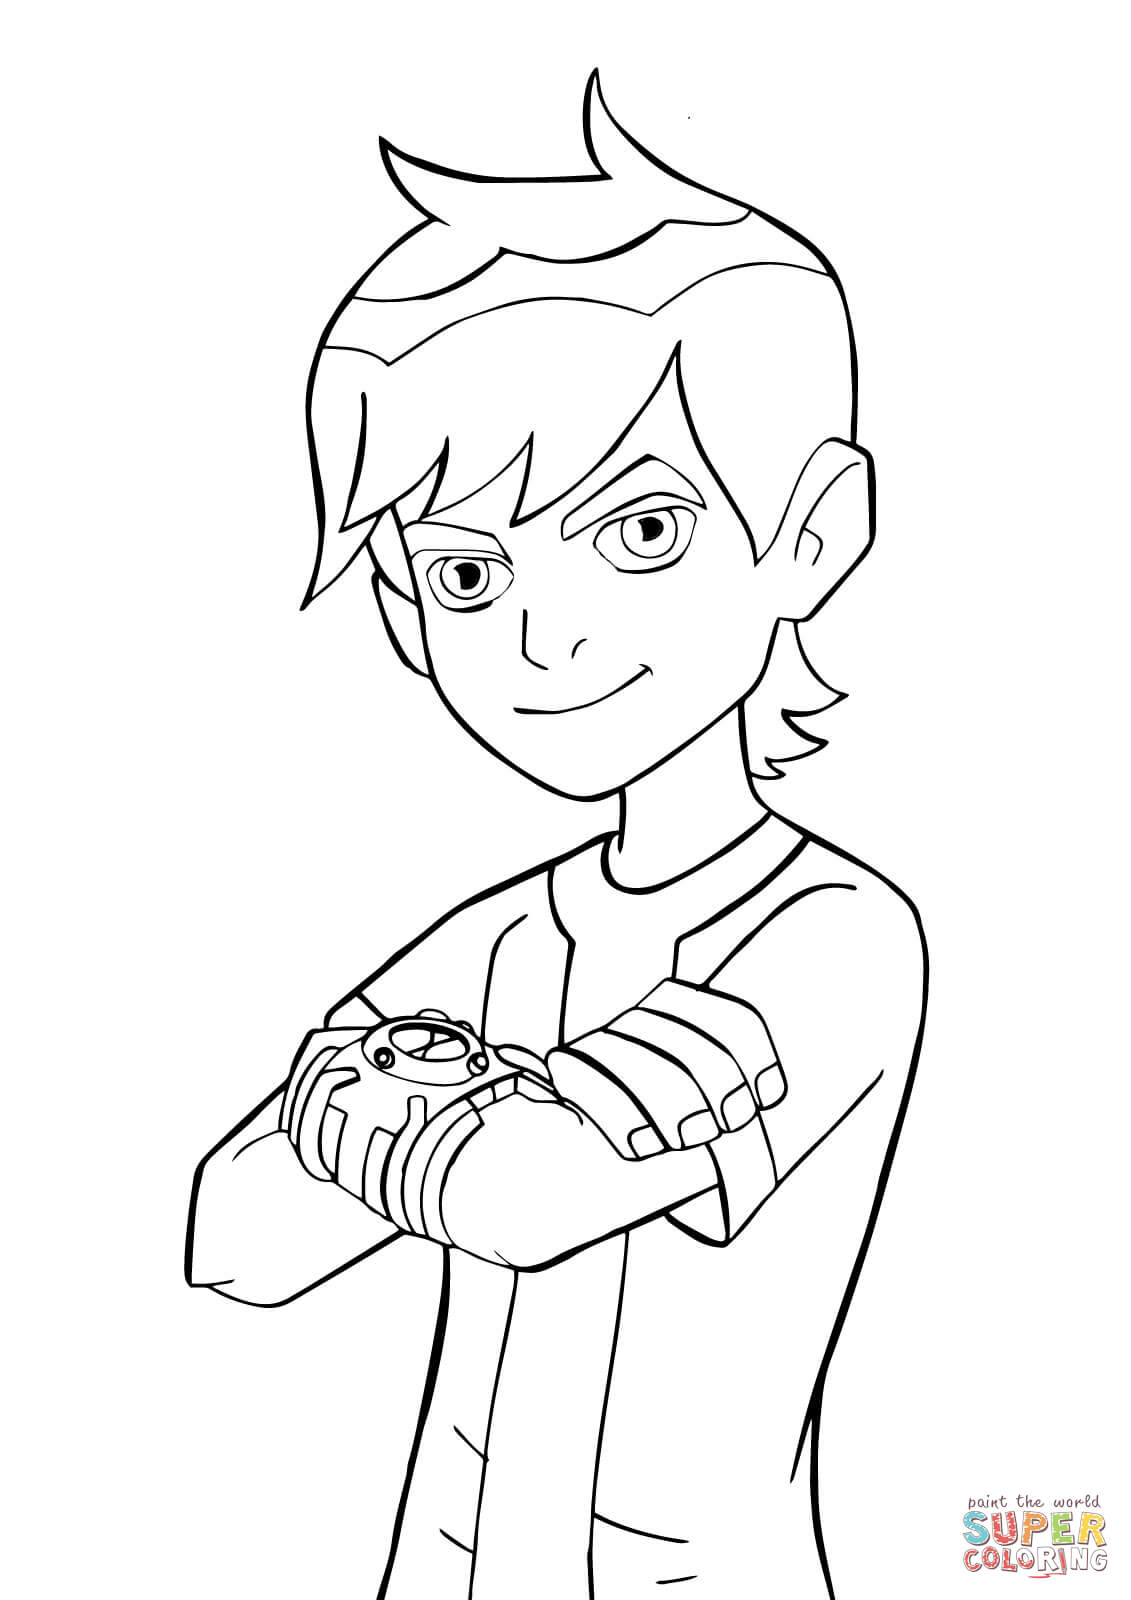 Ben 10 with Omnitrix from Ben 10 Coloring Page - Free ...